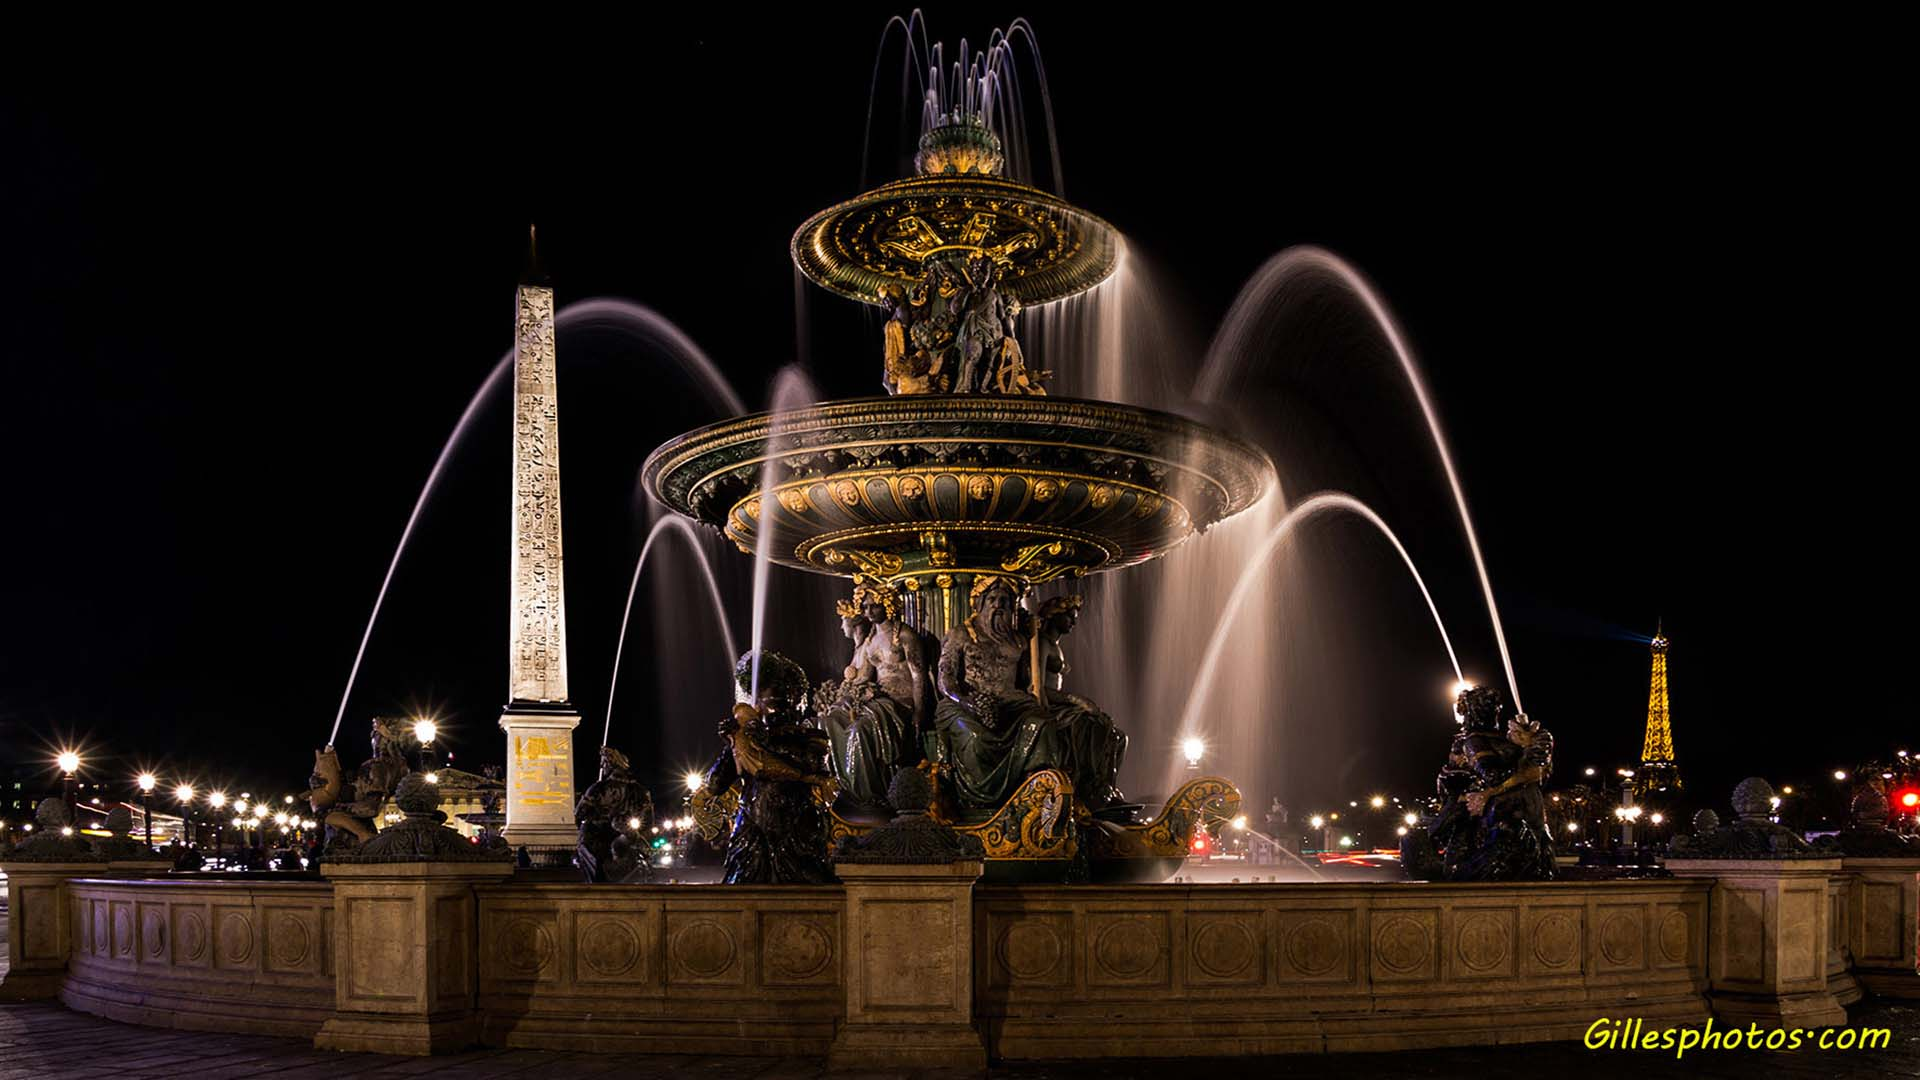 Photos Fontaine place de la concorde